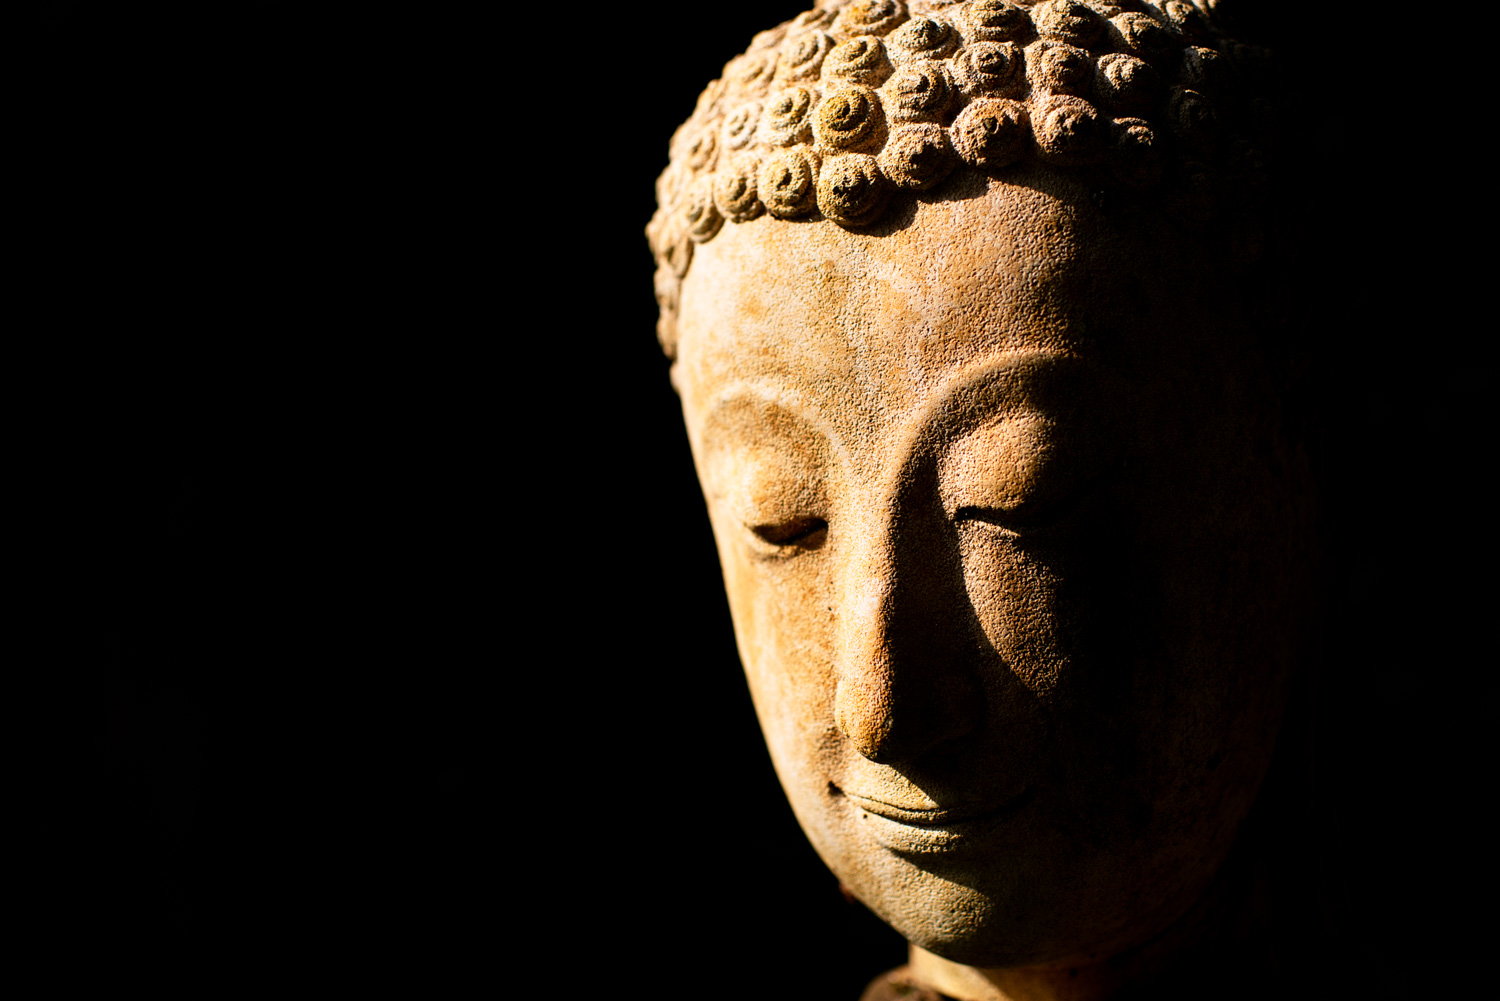 https://i1.wp.com/digital-photography-school.com/wp-content/uploads/2020/04/Buddha-Statue.jpg?ssl=1